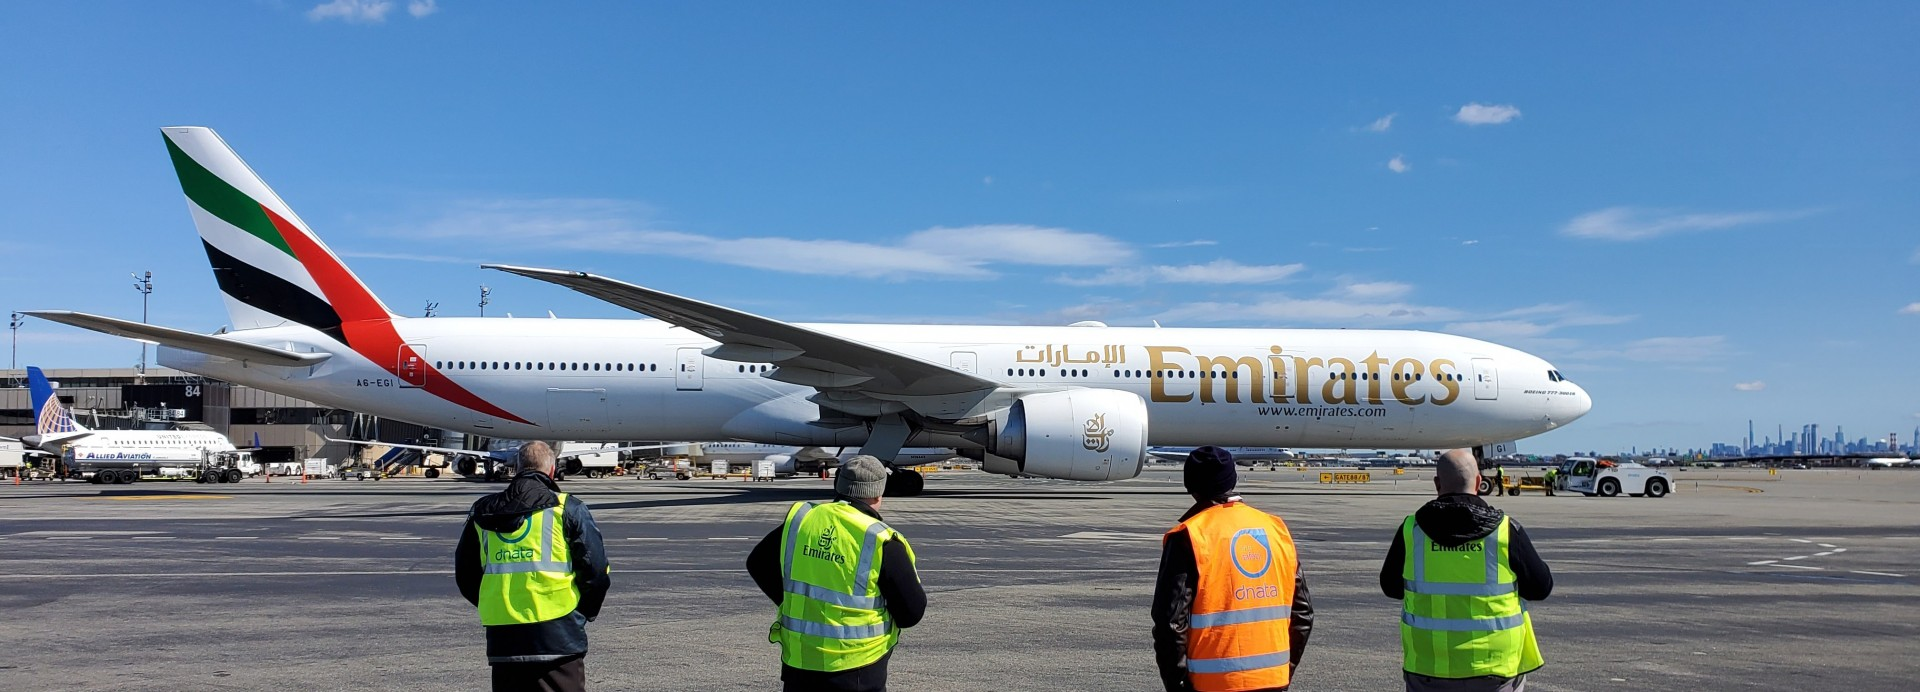 Emirates' outstation airport teams from Newark devotedly sent of their last passenger flights before the suspension took effect.